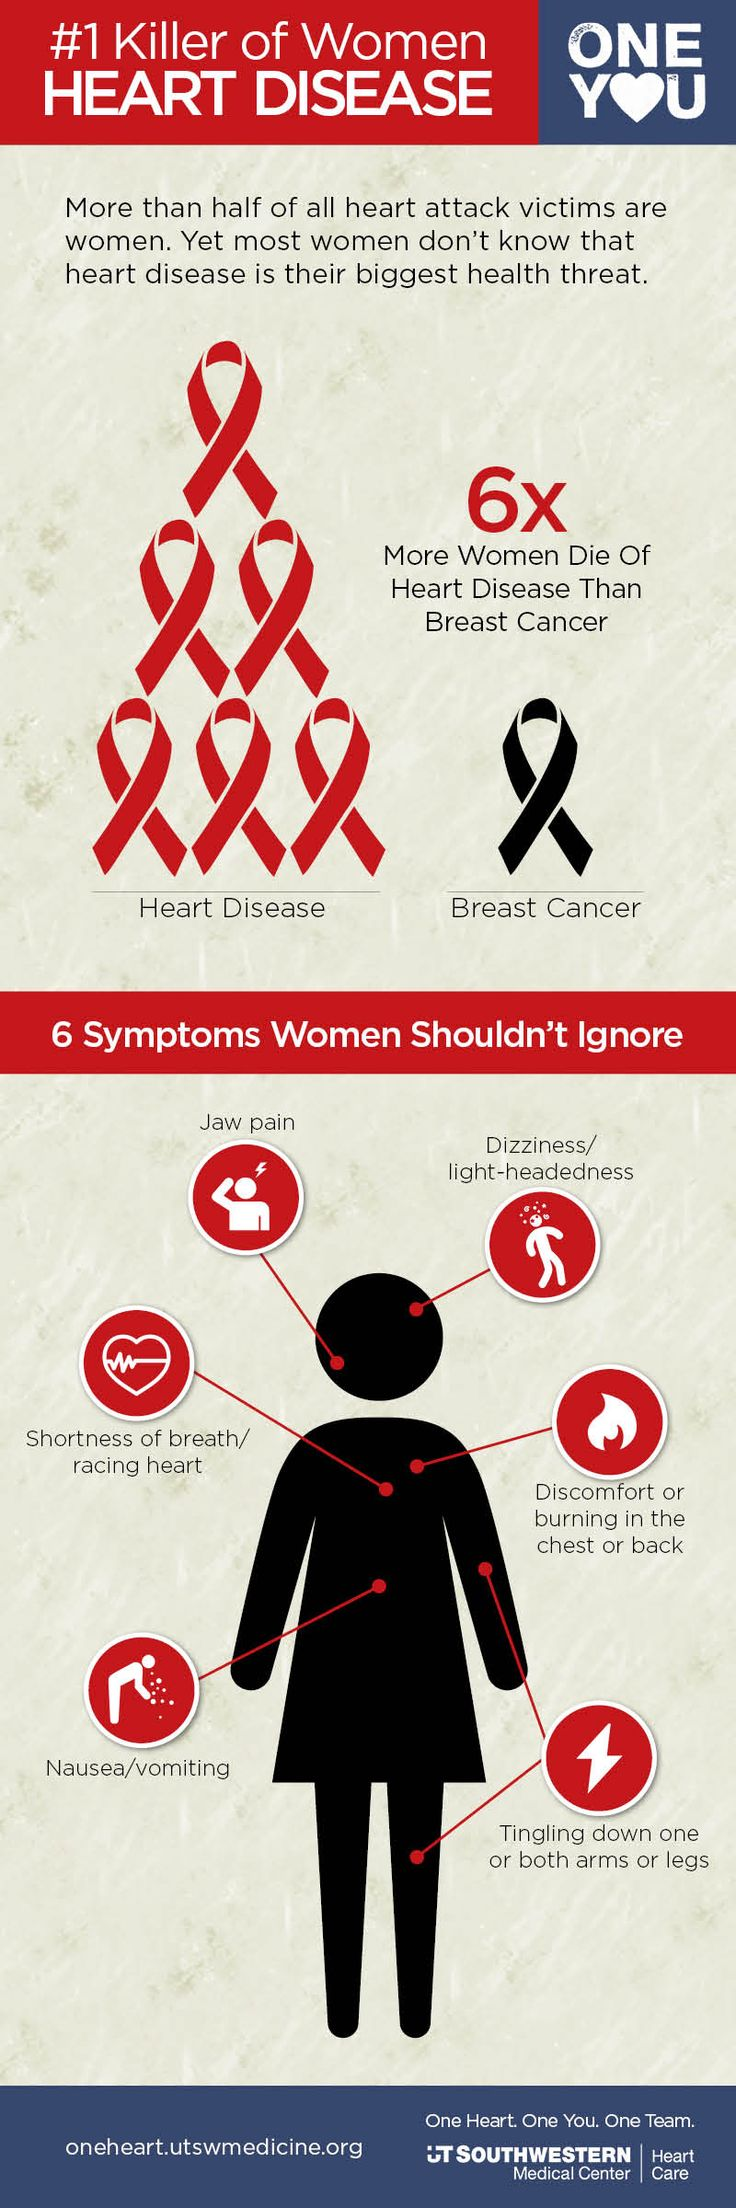 Symptoms of Heart Disease in Women  http://oneheart.utswmedicine.org/symptoms-heart-disease-women/